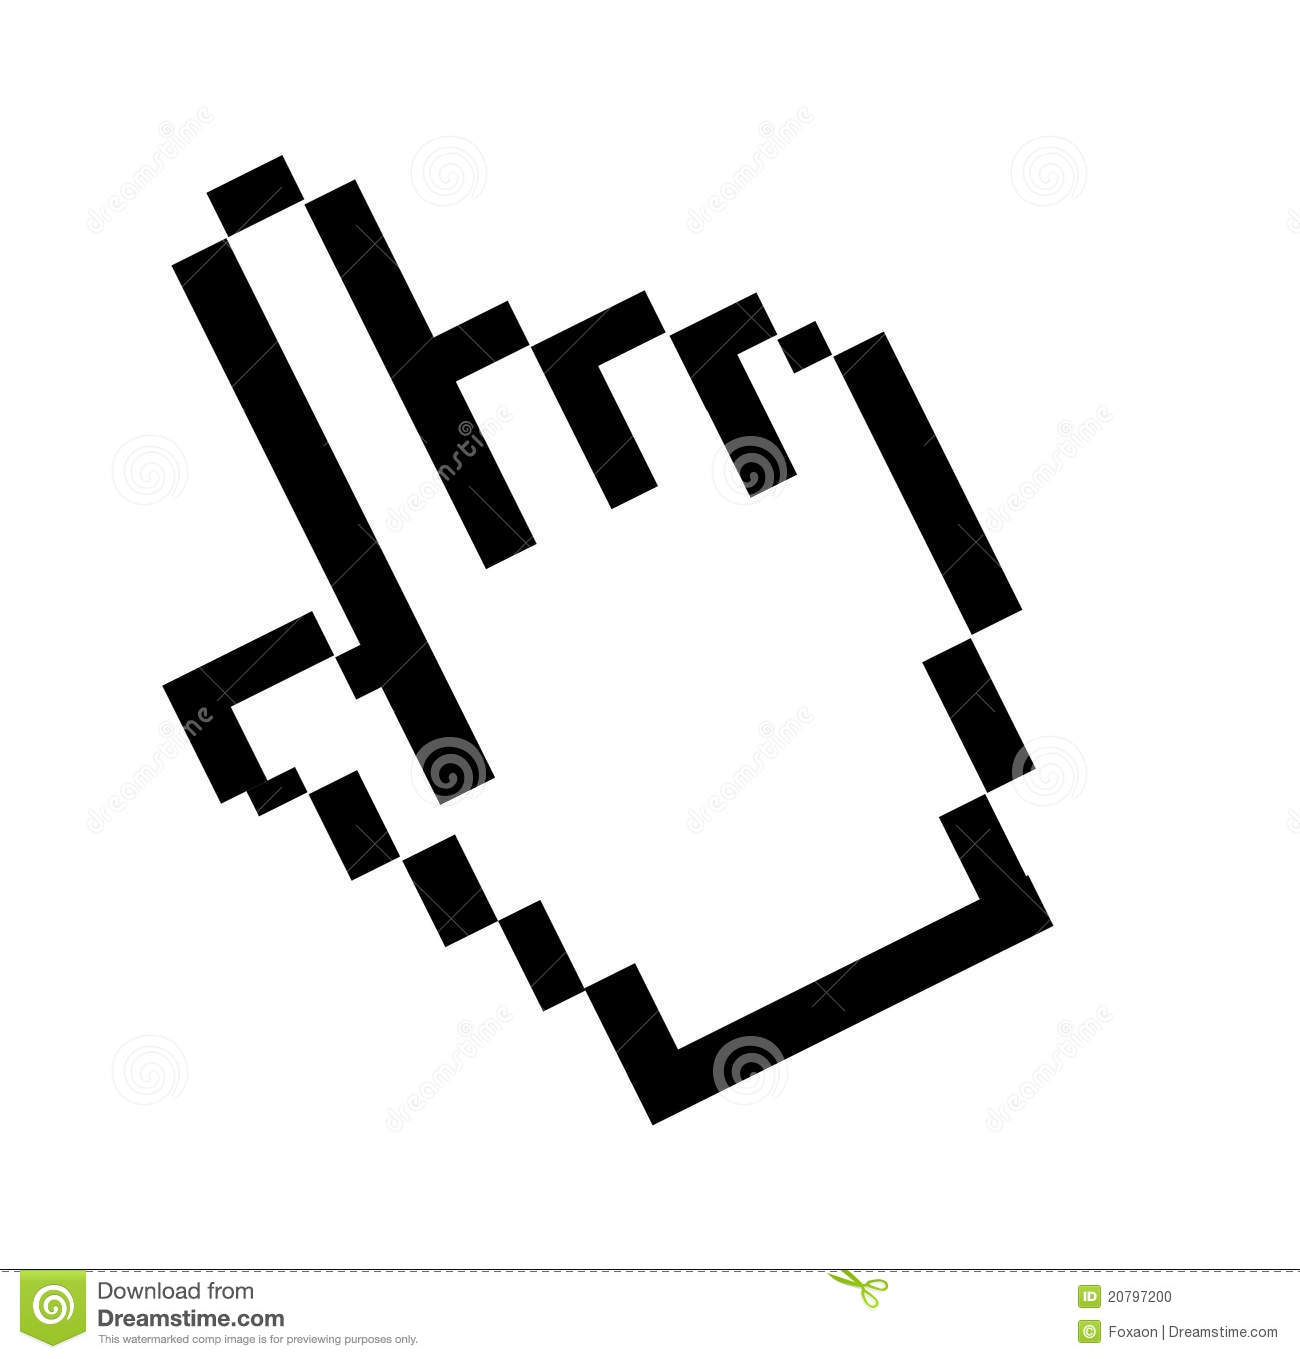 Computer mouse pointer clipart. Royalty free stock photo